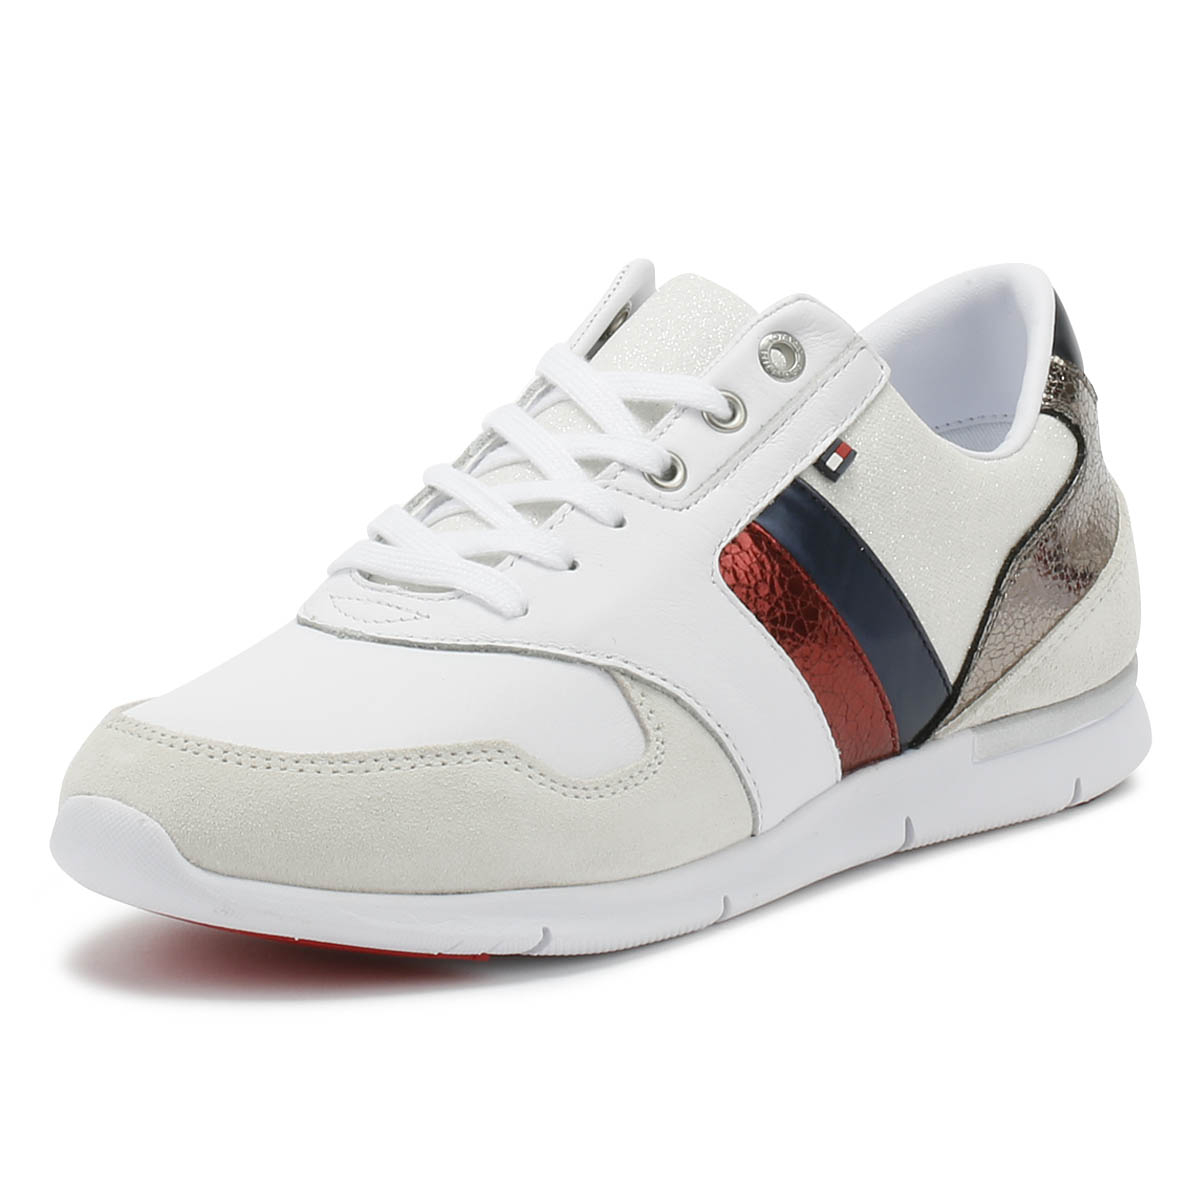 27317367f3 Details about Tommy Hilfiger Womens Trainers White Leather Light Lace Up  Sport Casual Shoes